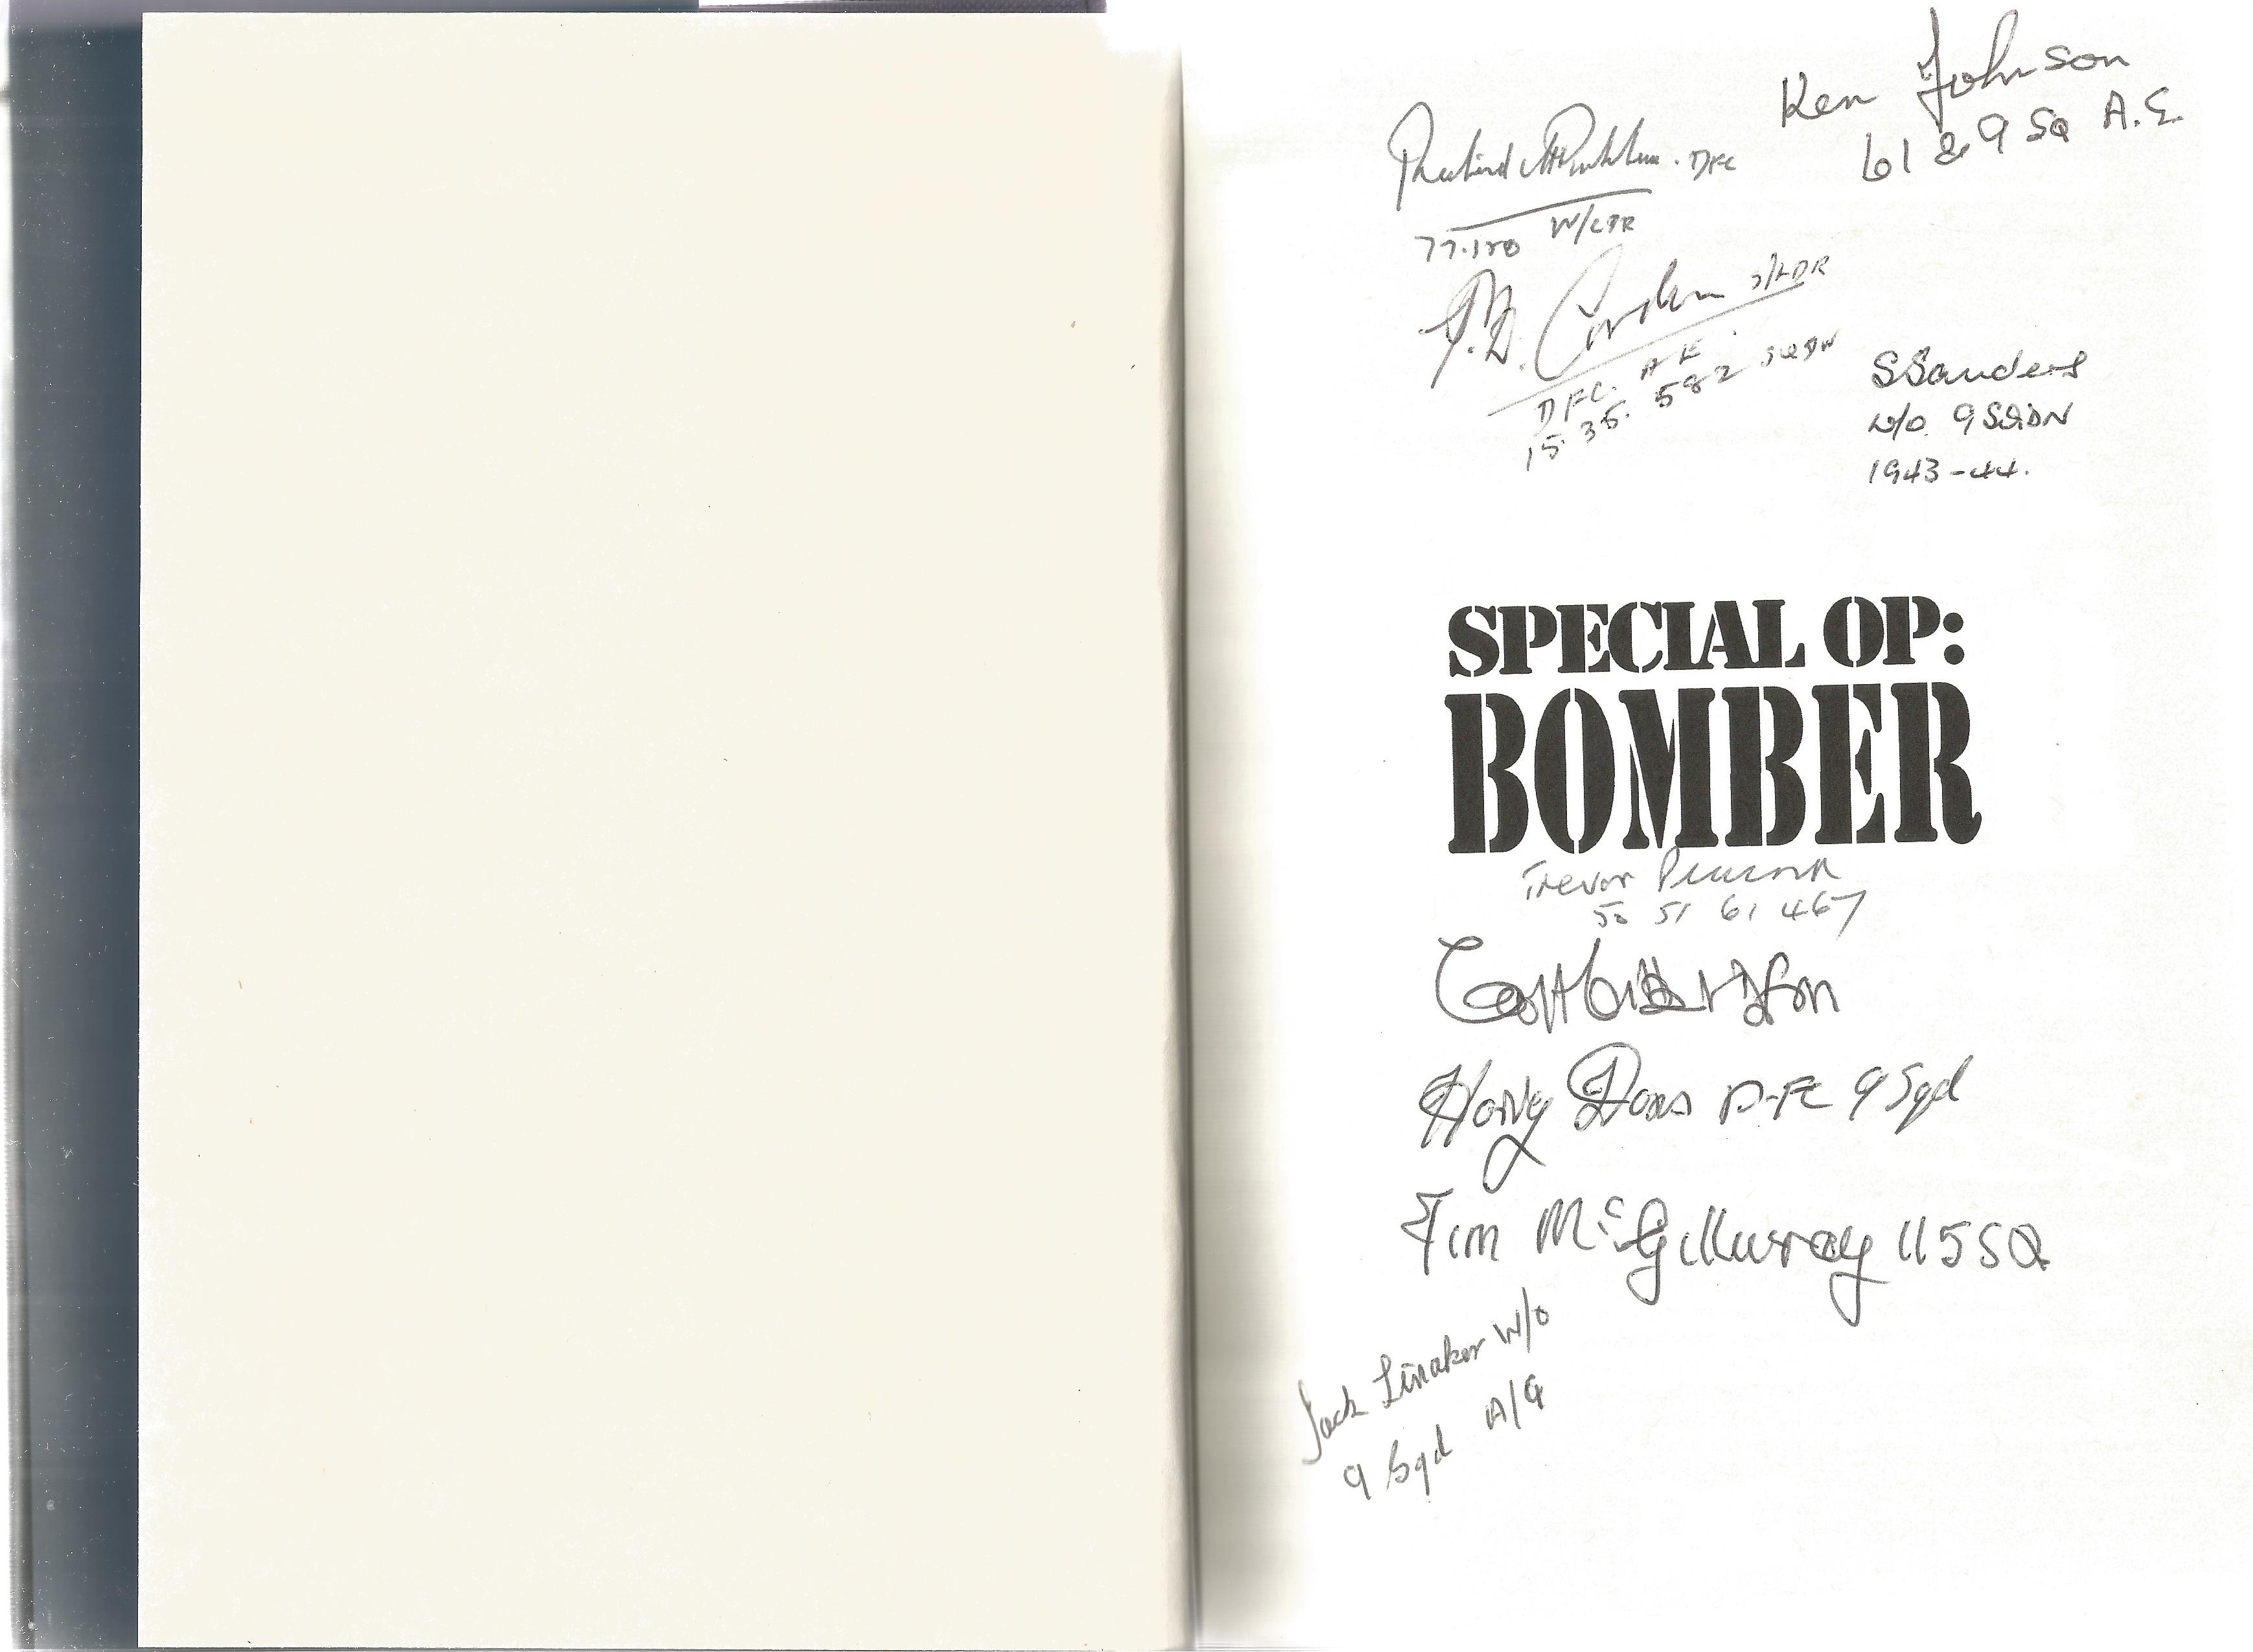 Steve Darlow. Special Op: Bomber. Daring Missions That Changed the Shape of WW2. A First Edition - Image 4 of 4